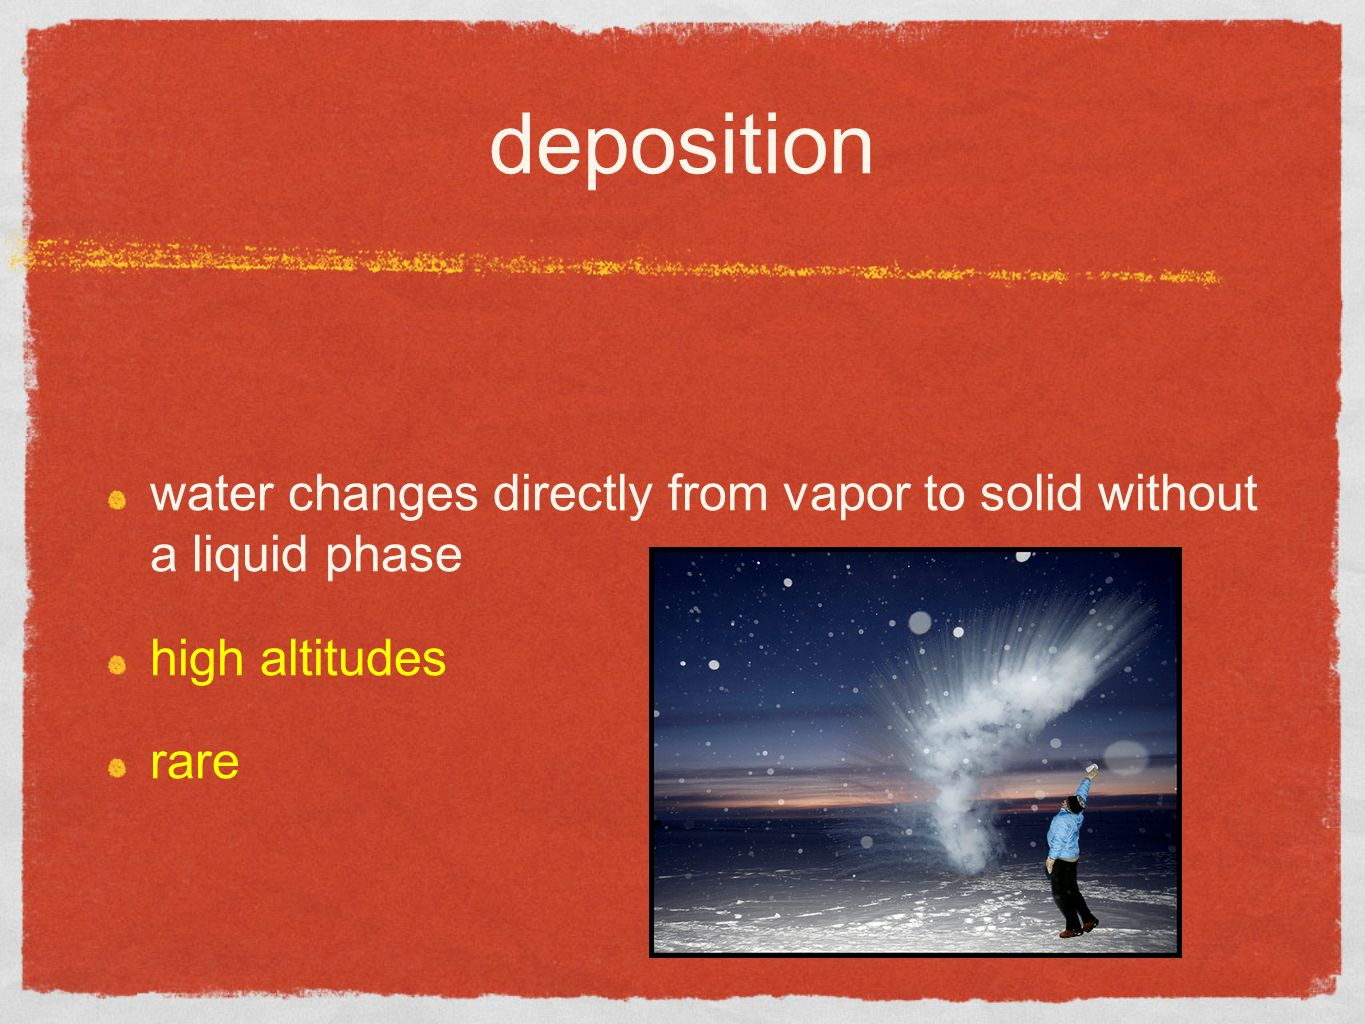 deposition water changes directly from vapor to solid without a liquid phase high altitudes rare